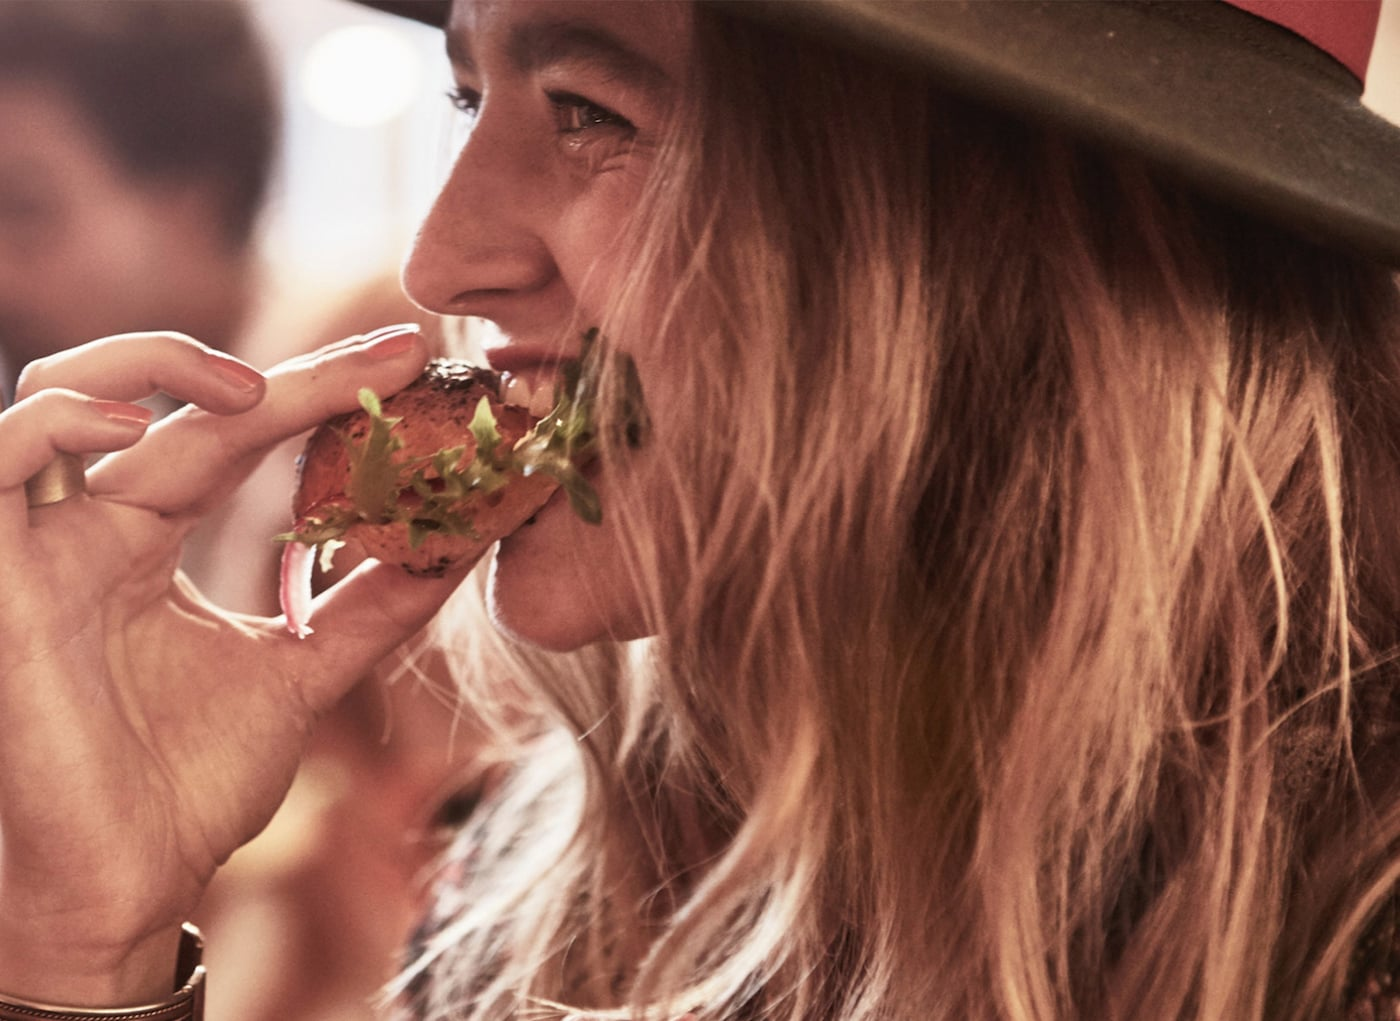 A girl eating a snack with bread and salad in it.